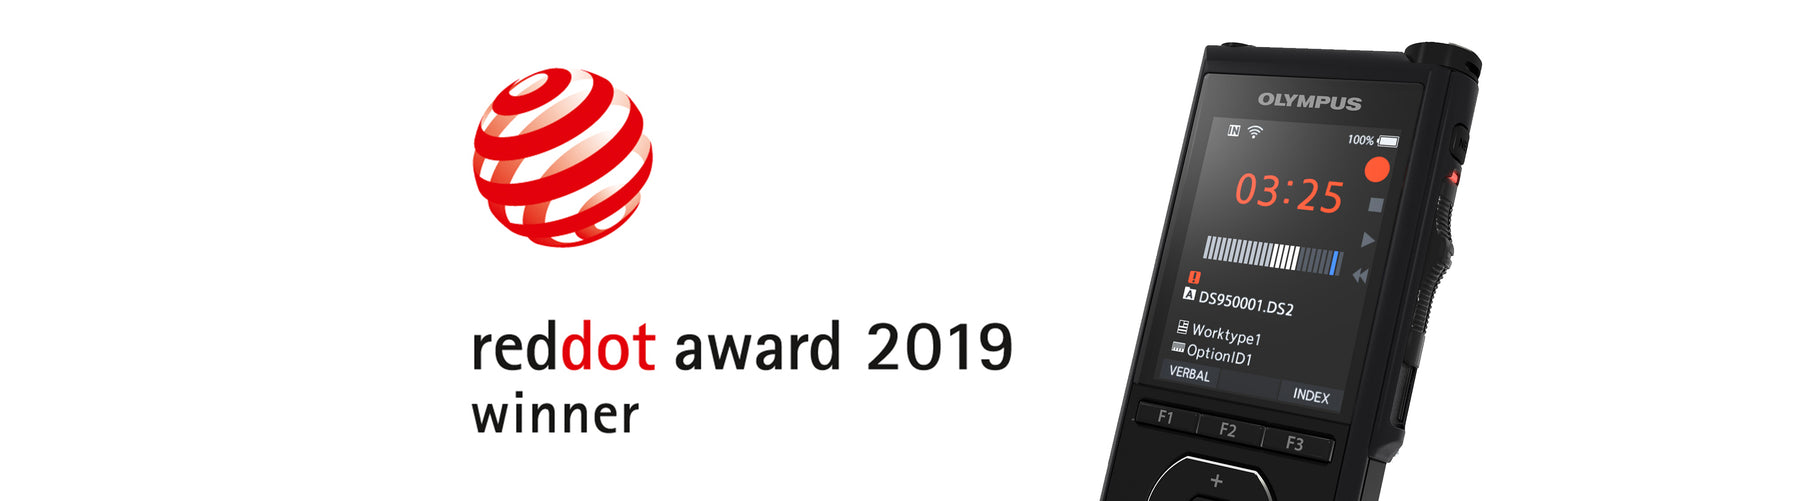 Olympus DS-9500 Winner of the Red Dot Design Awards 2019